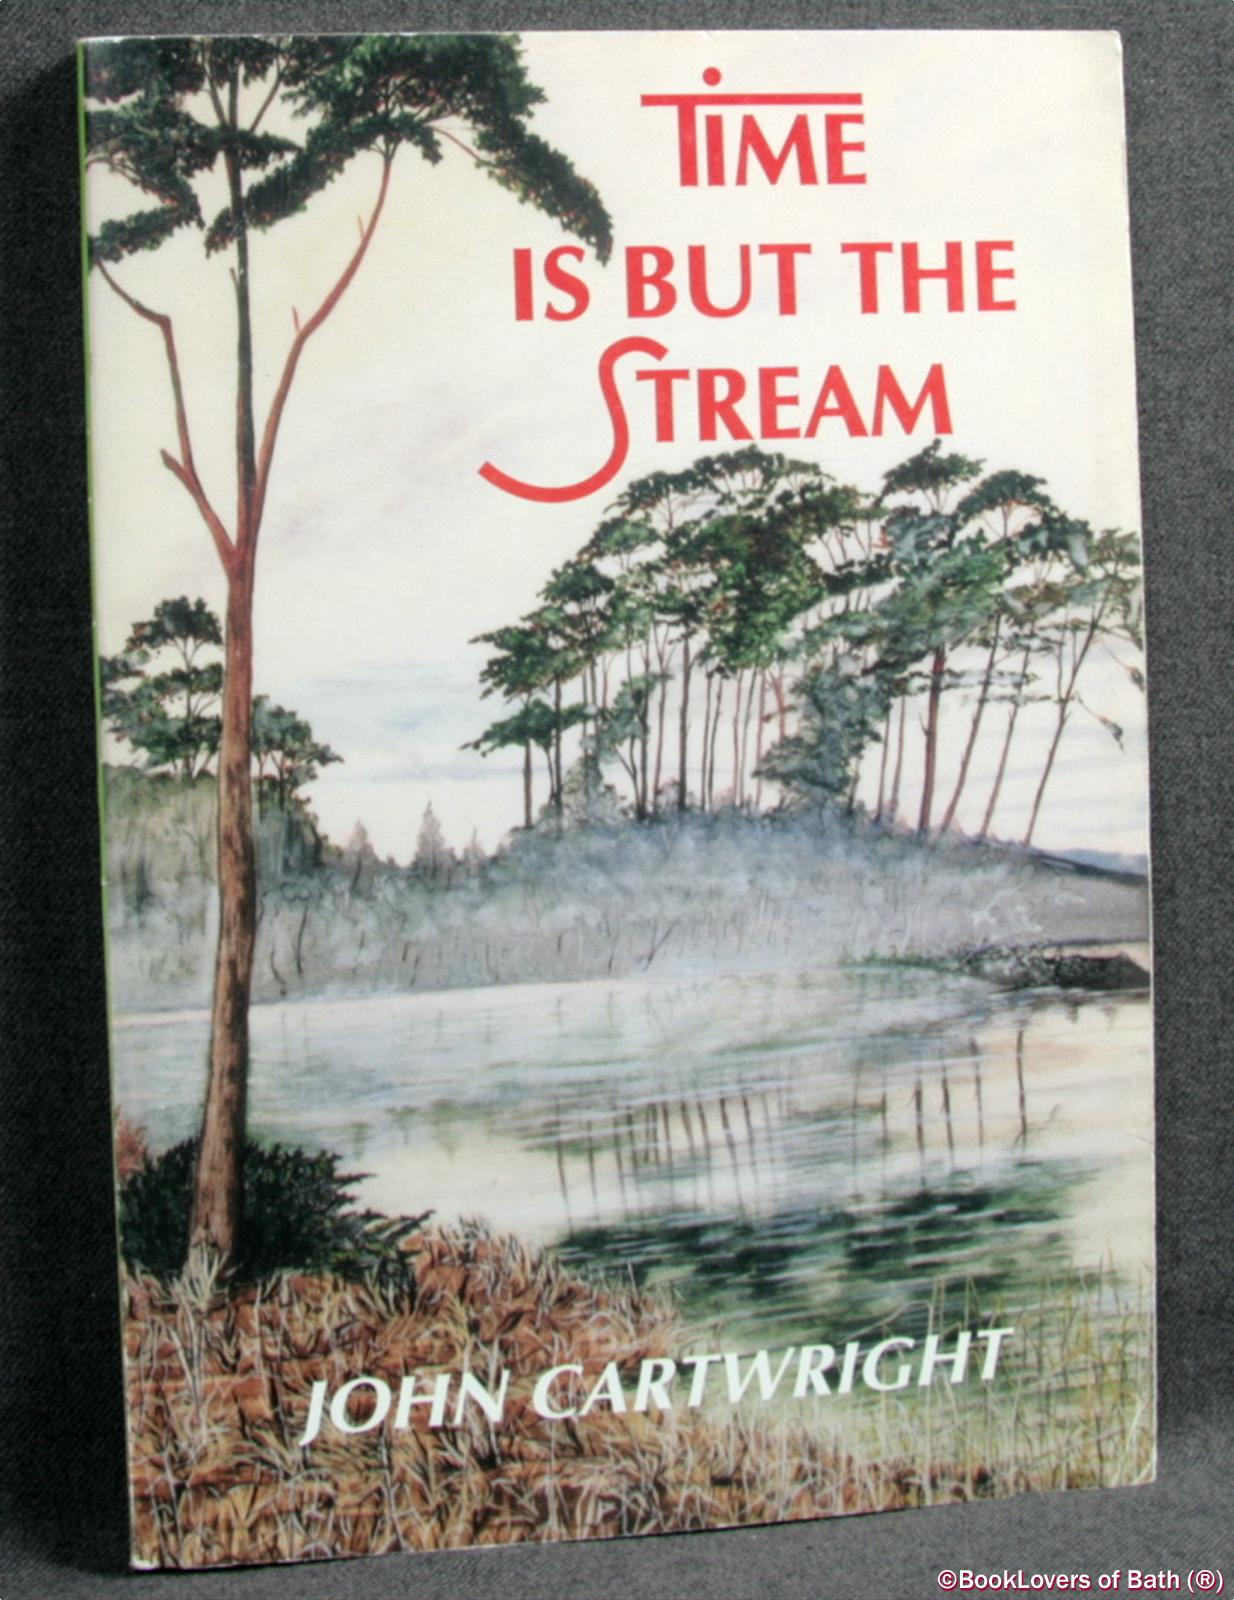 Time Is But the Stream: The Story of Jessica - A Most Unusal Artist - John Cartwright